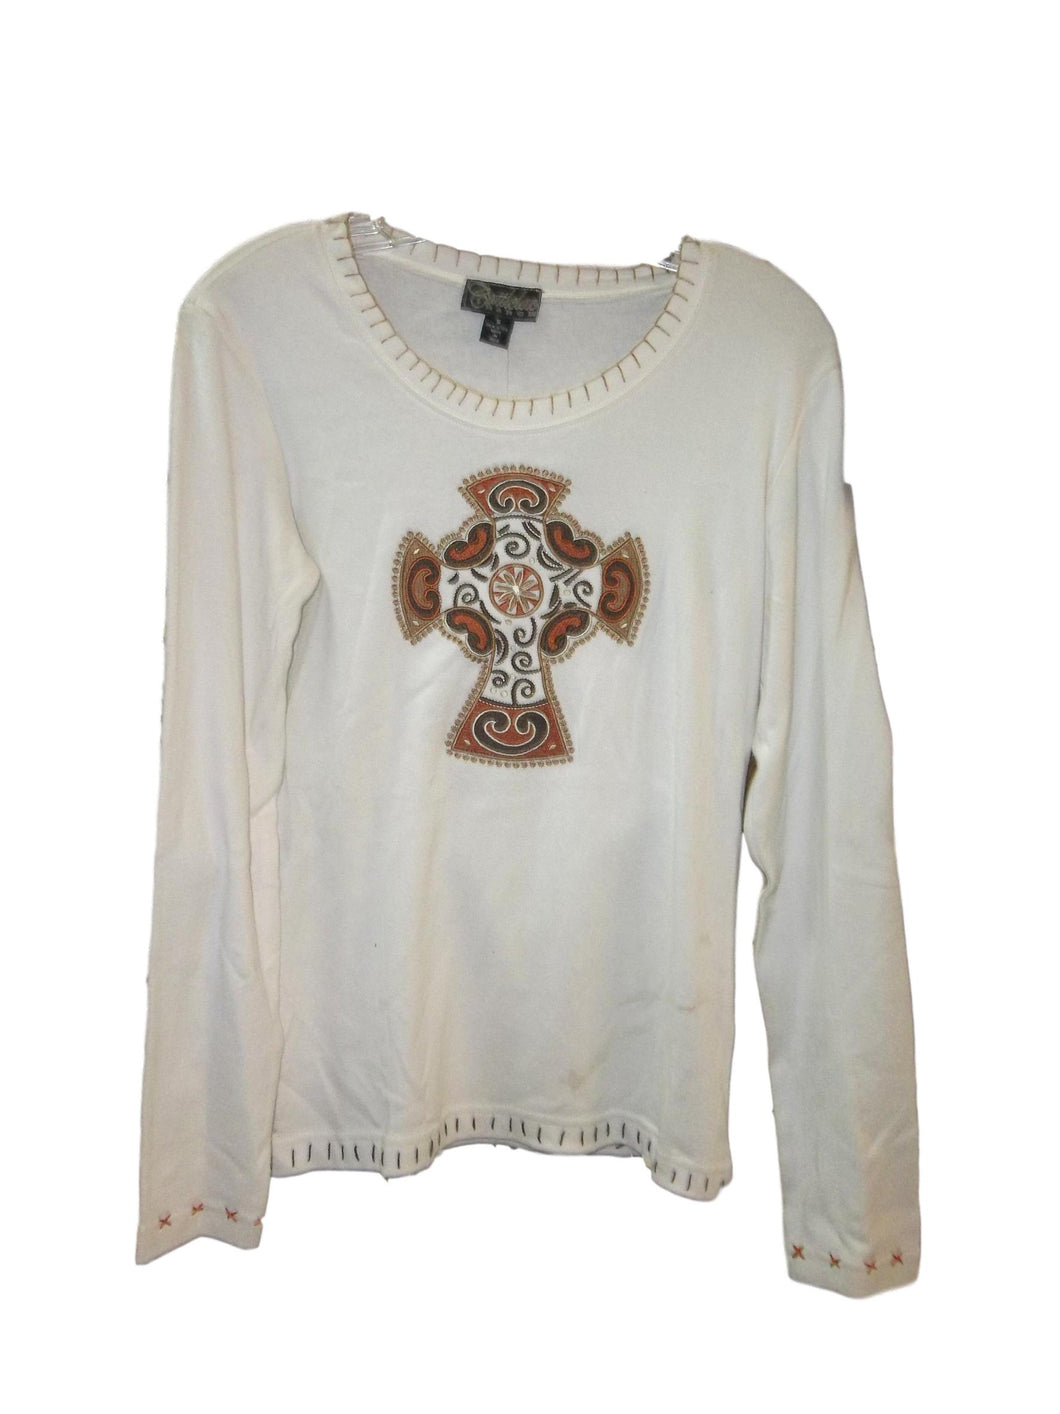 Embroidered Cross L/S Shirt